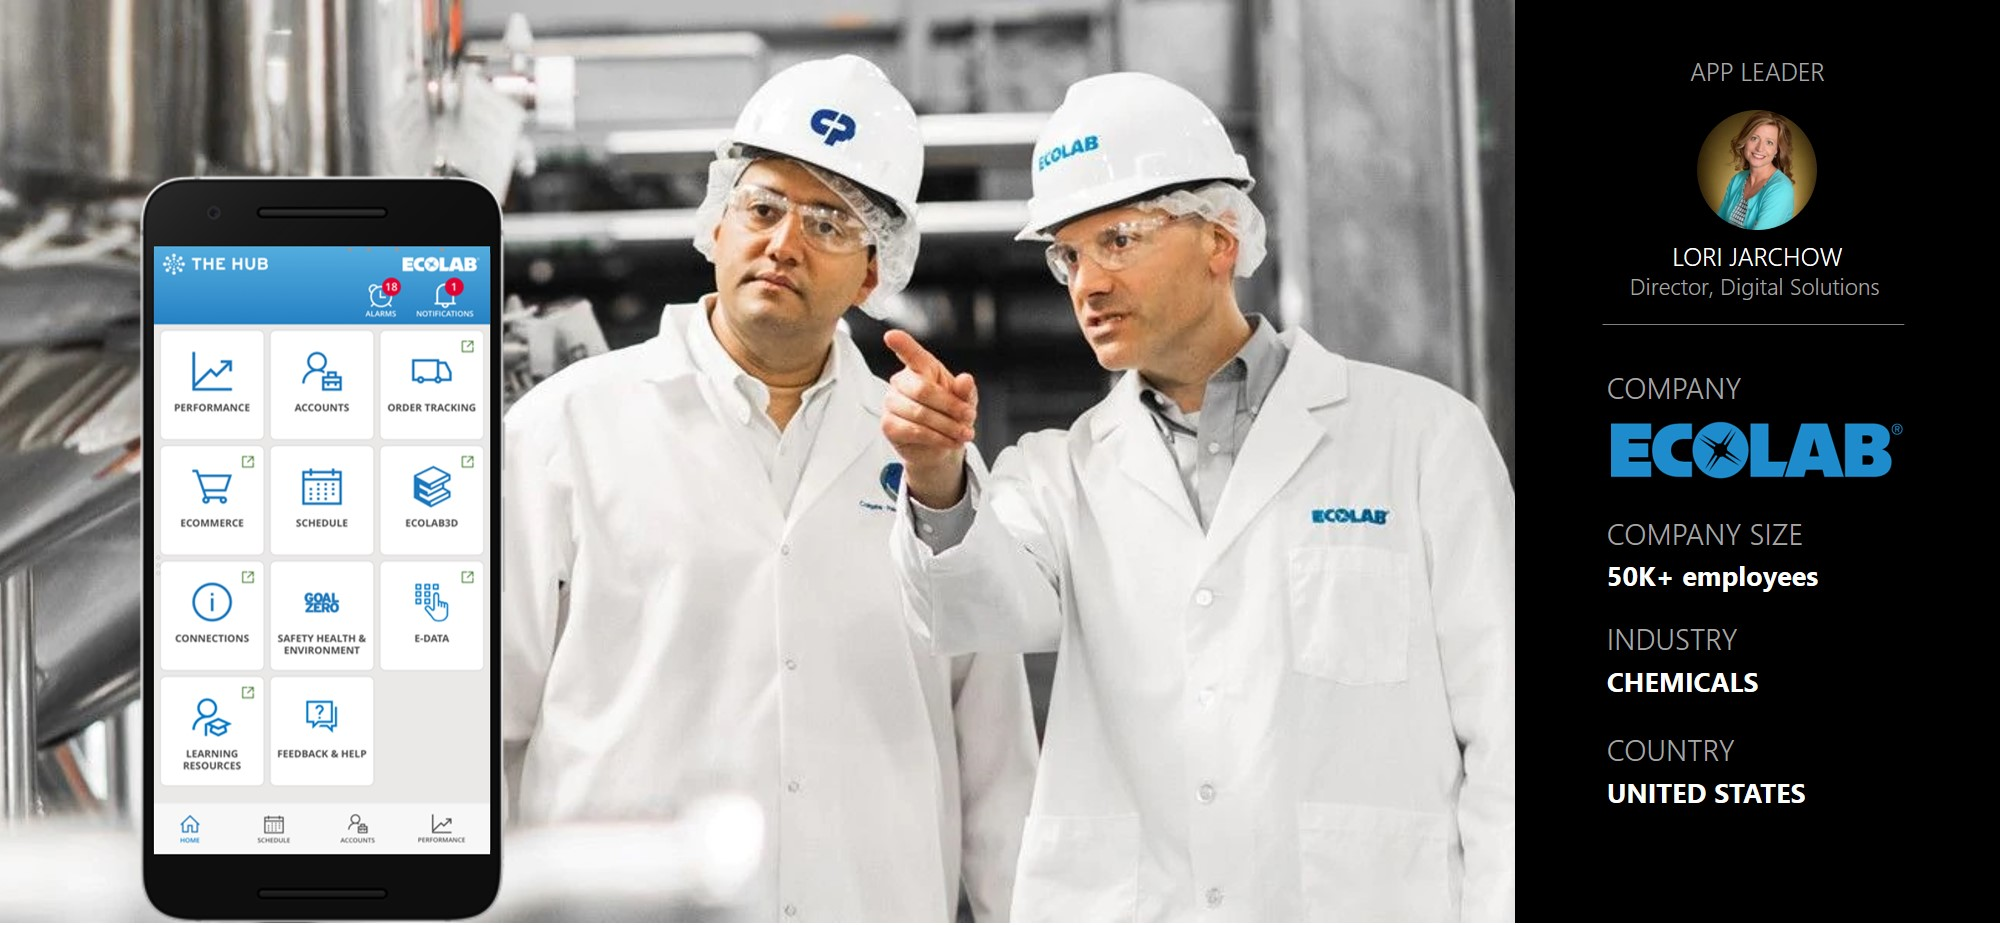 Banner image for Ecolab story. Mentions App leader Lori Jarchow, 50K+ employees, Industry - Chemicals, Country - United States